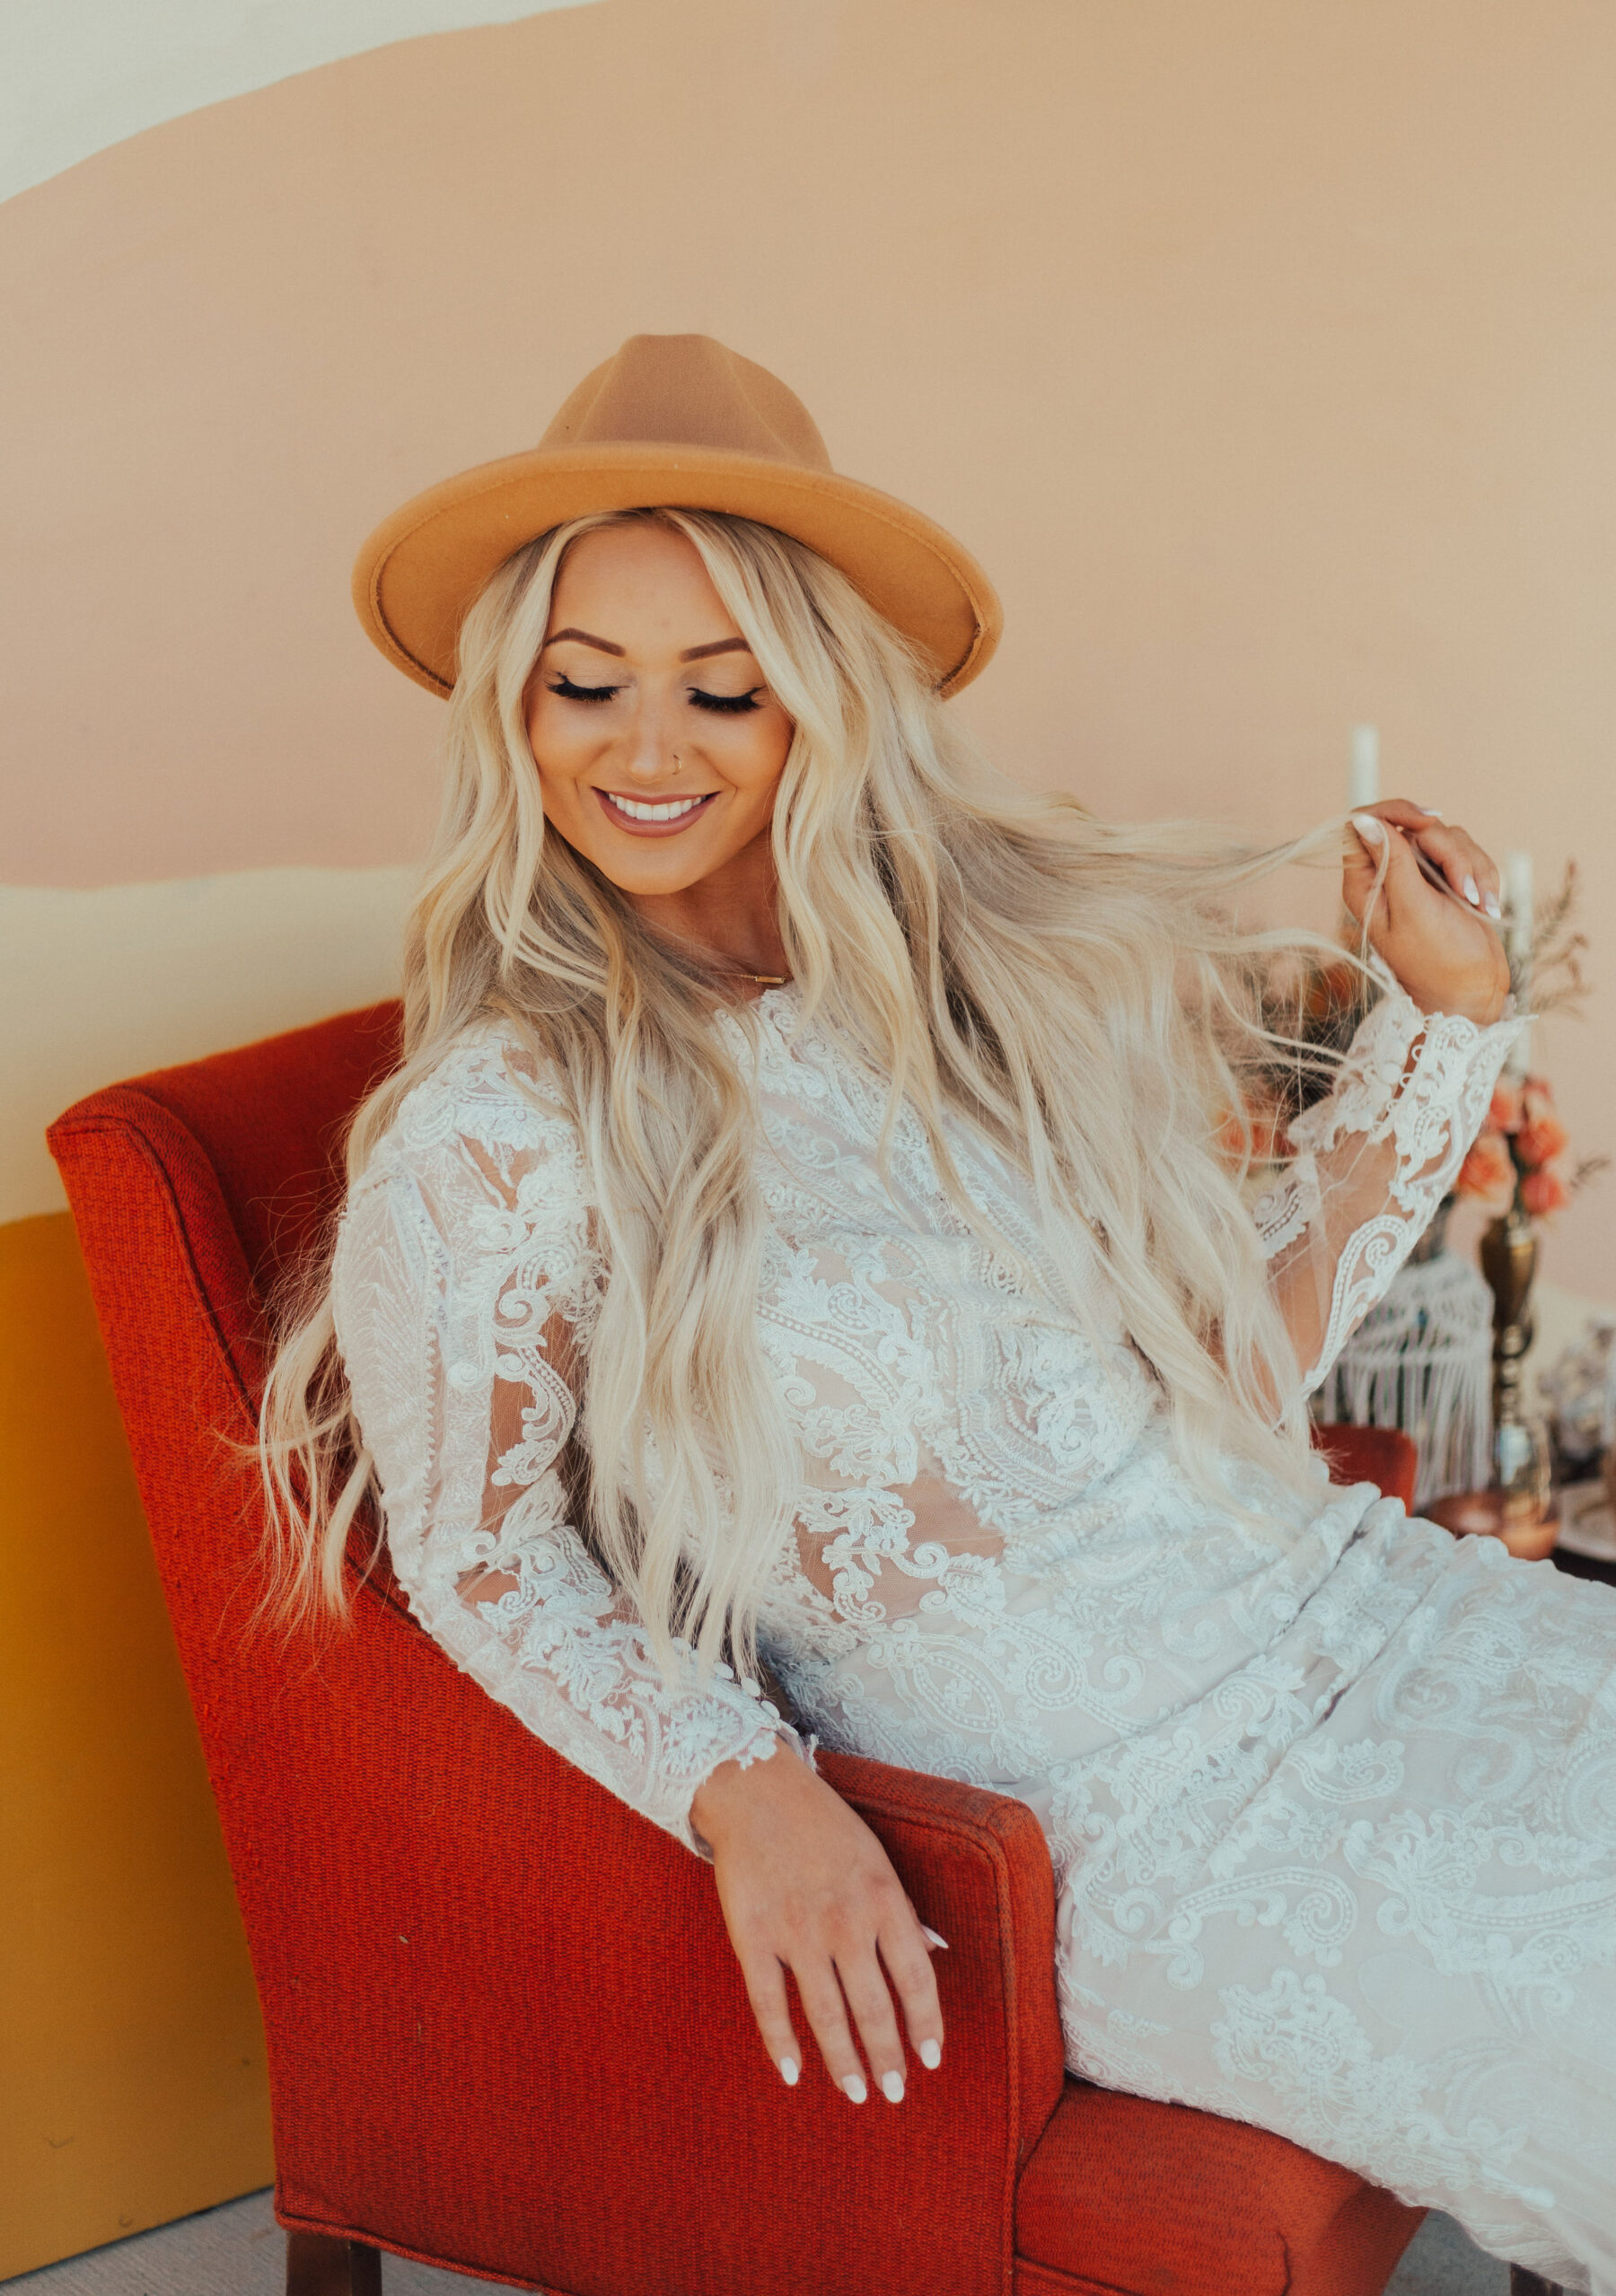 Boho bride: Bright Bohemian Photo Shoot from Ina J Designs